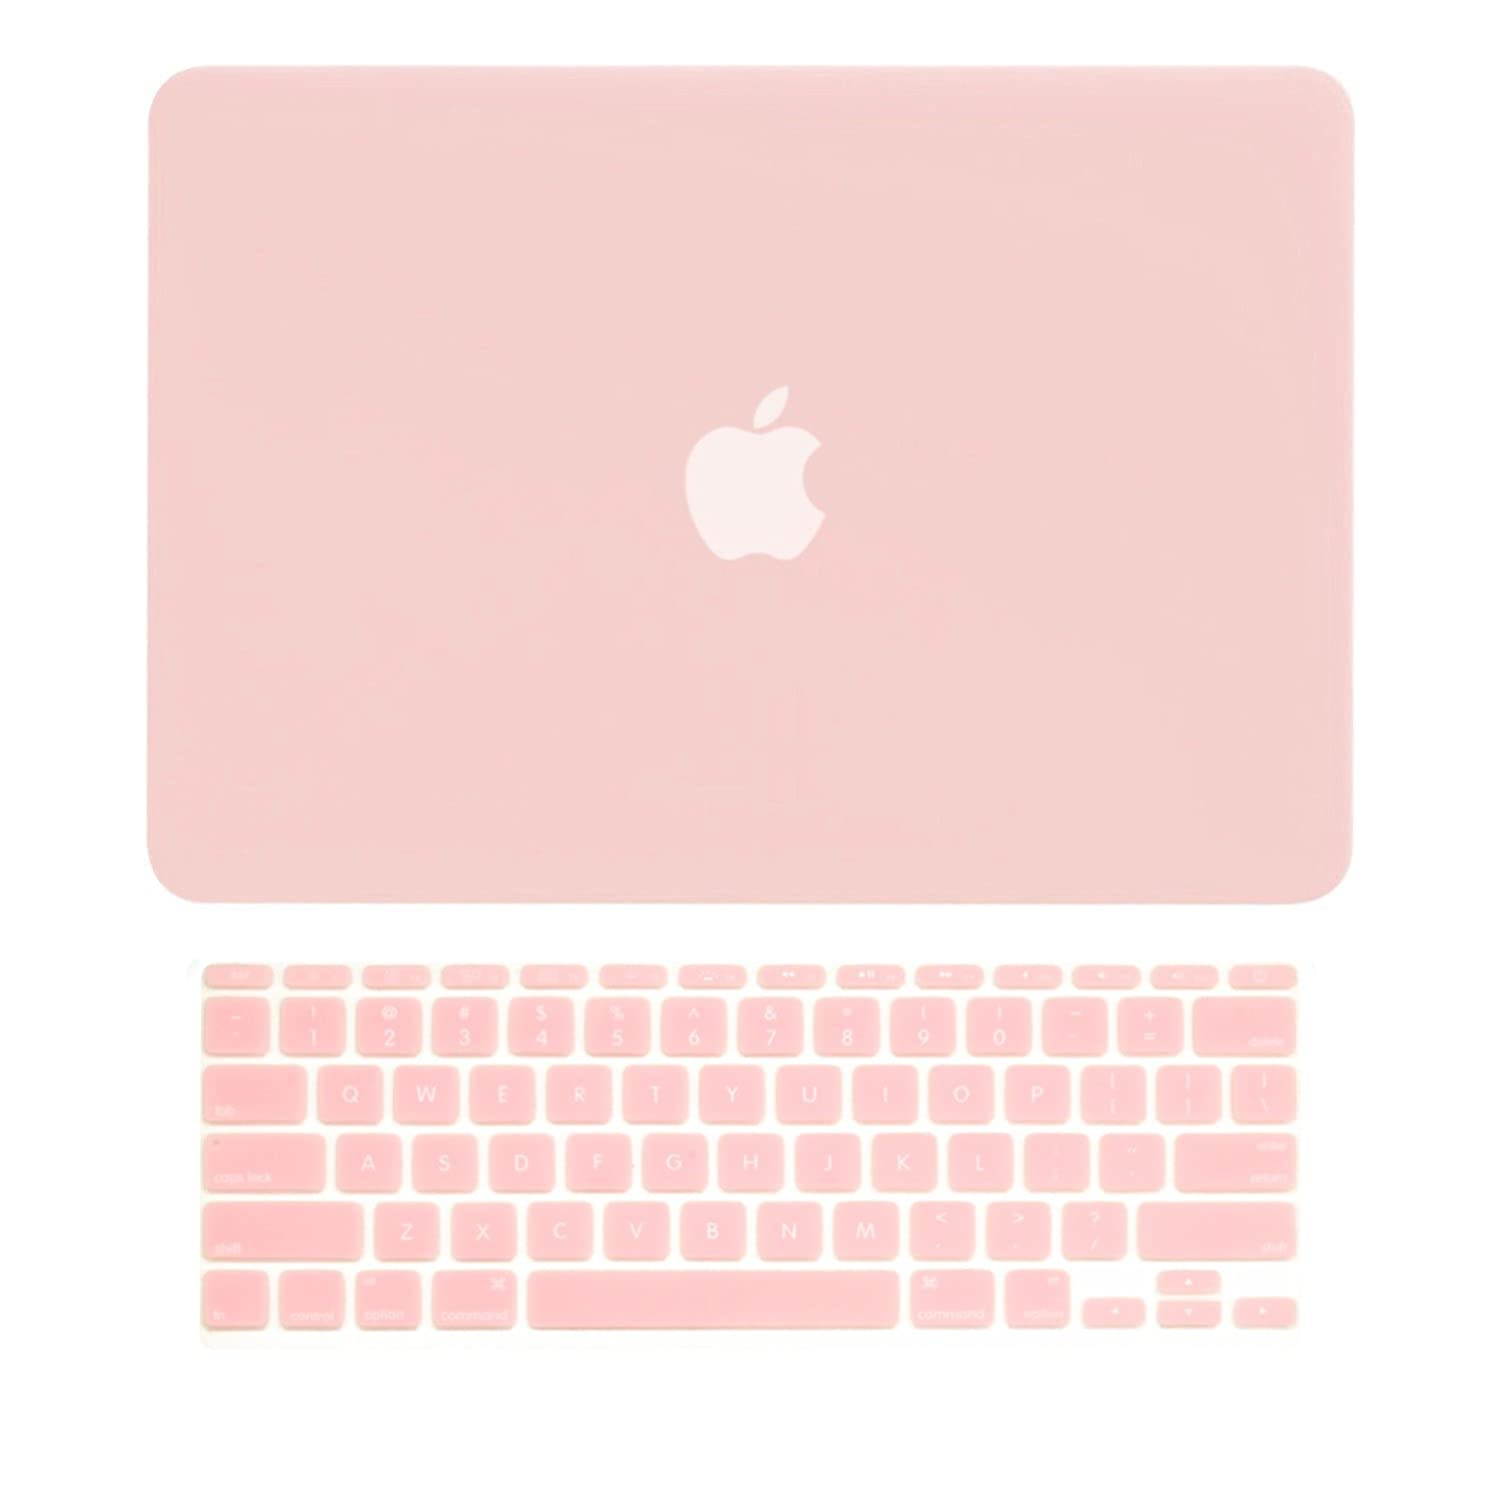 """TOP CASE - 2 in 1 Bundle Deal Air 11-Inch Rubberized Hard Case Cover and Rose Quartz Keyboard Cover for Macbook Air 11"""" (A1370 and A1465) with TopCase Mouse Pad - Rose Quartz"""